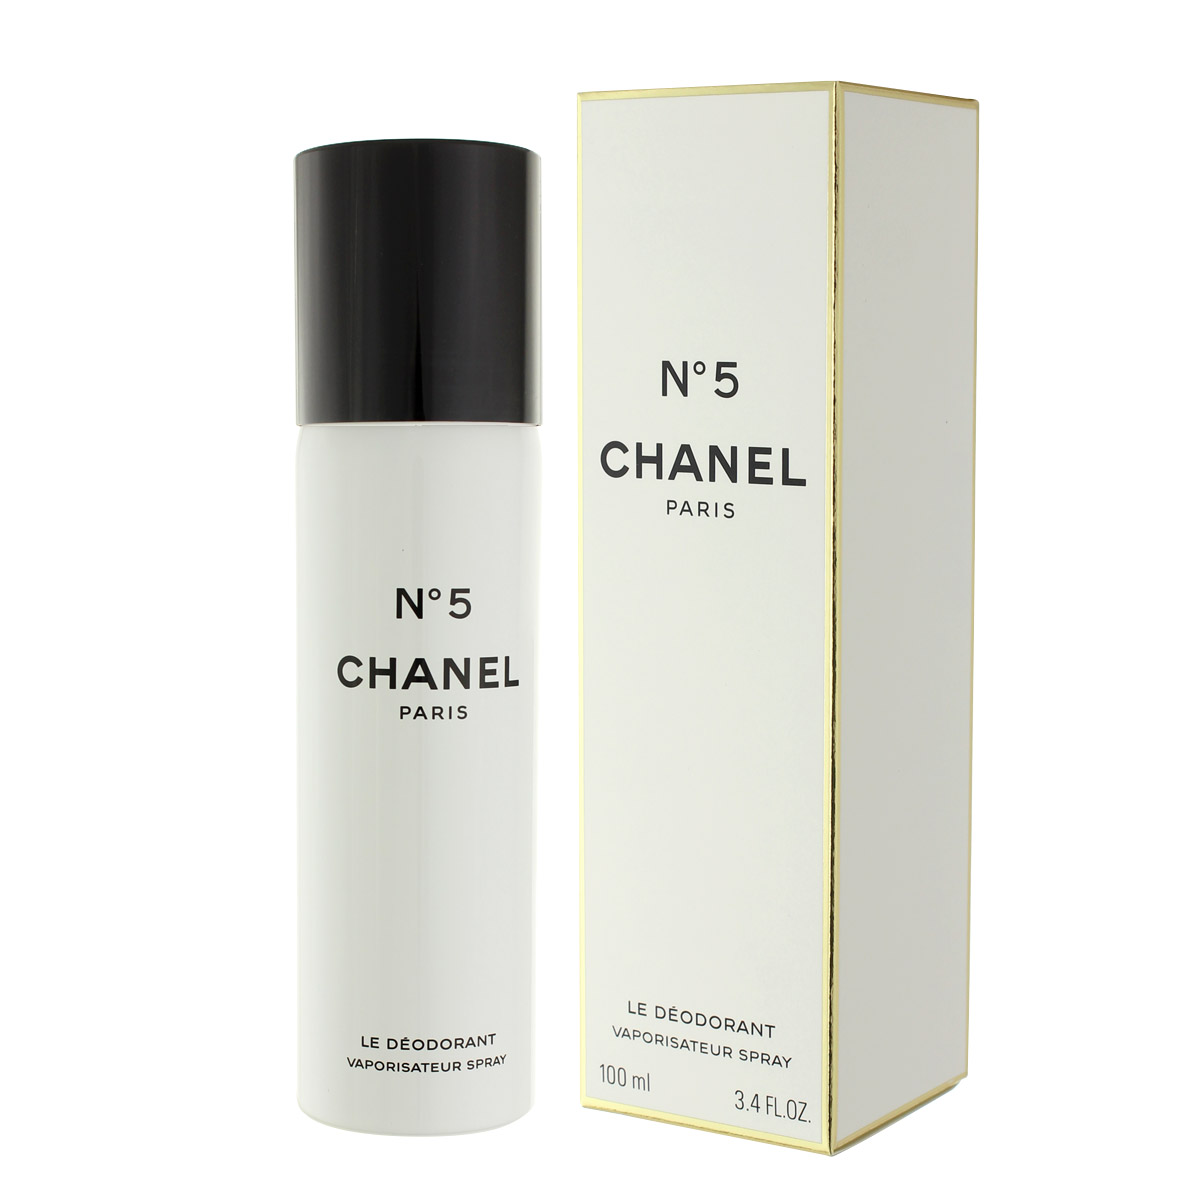 Chanel No 5 Deodorant im Spray 100 ml (woman)